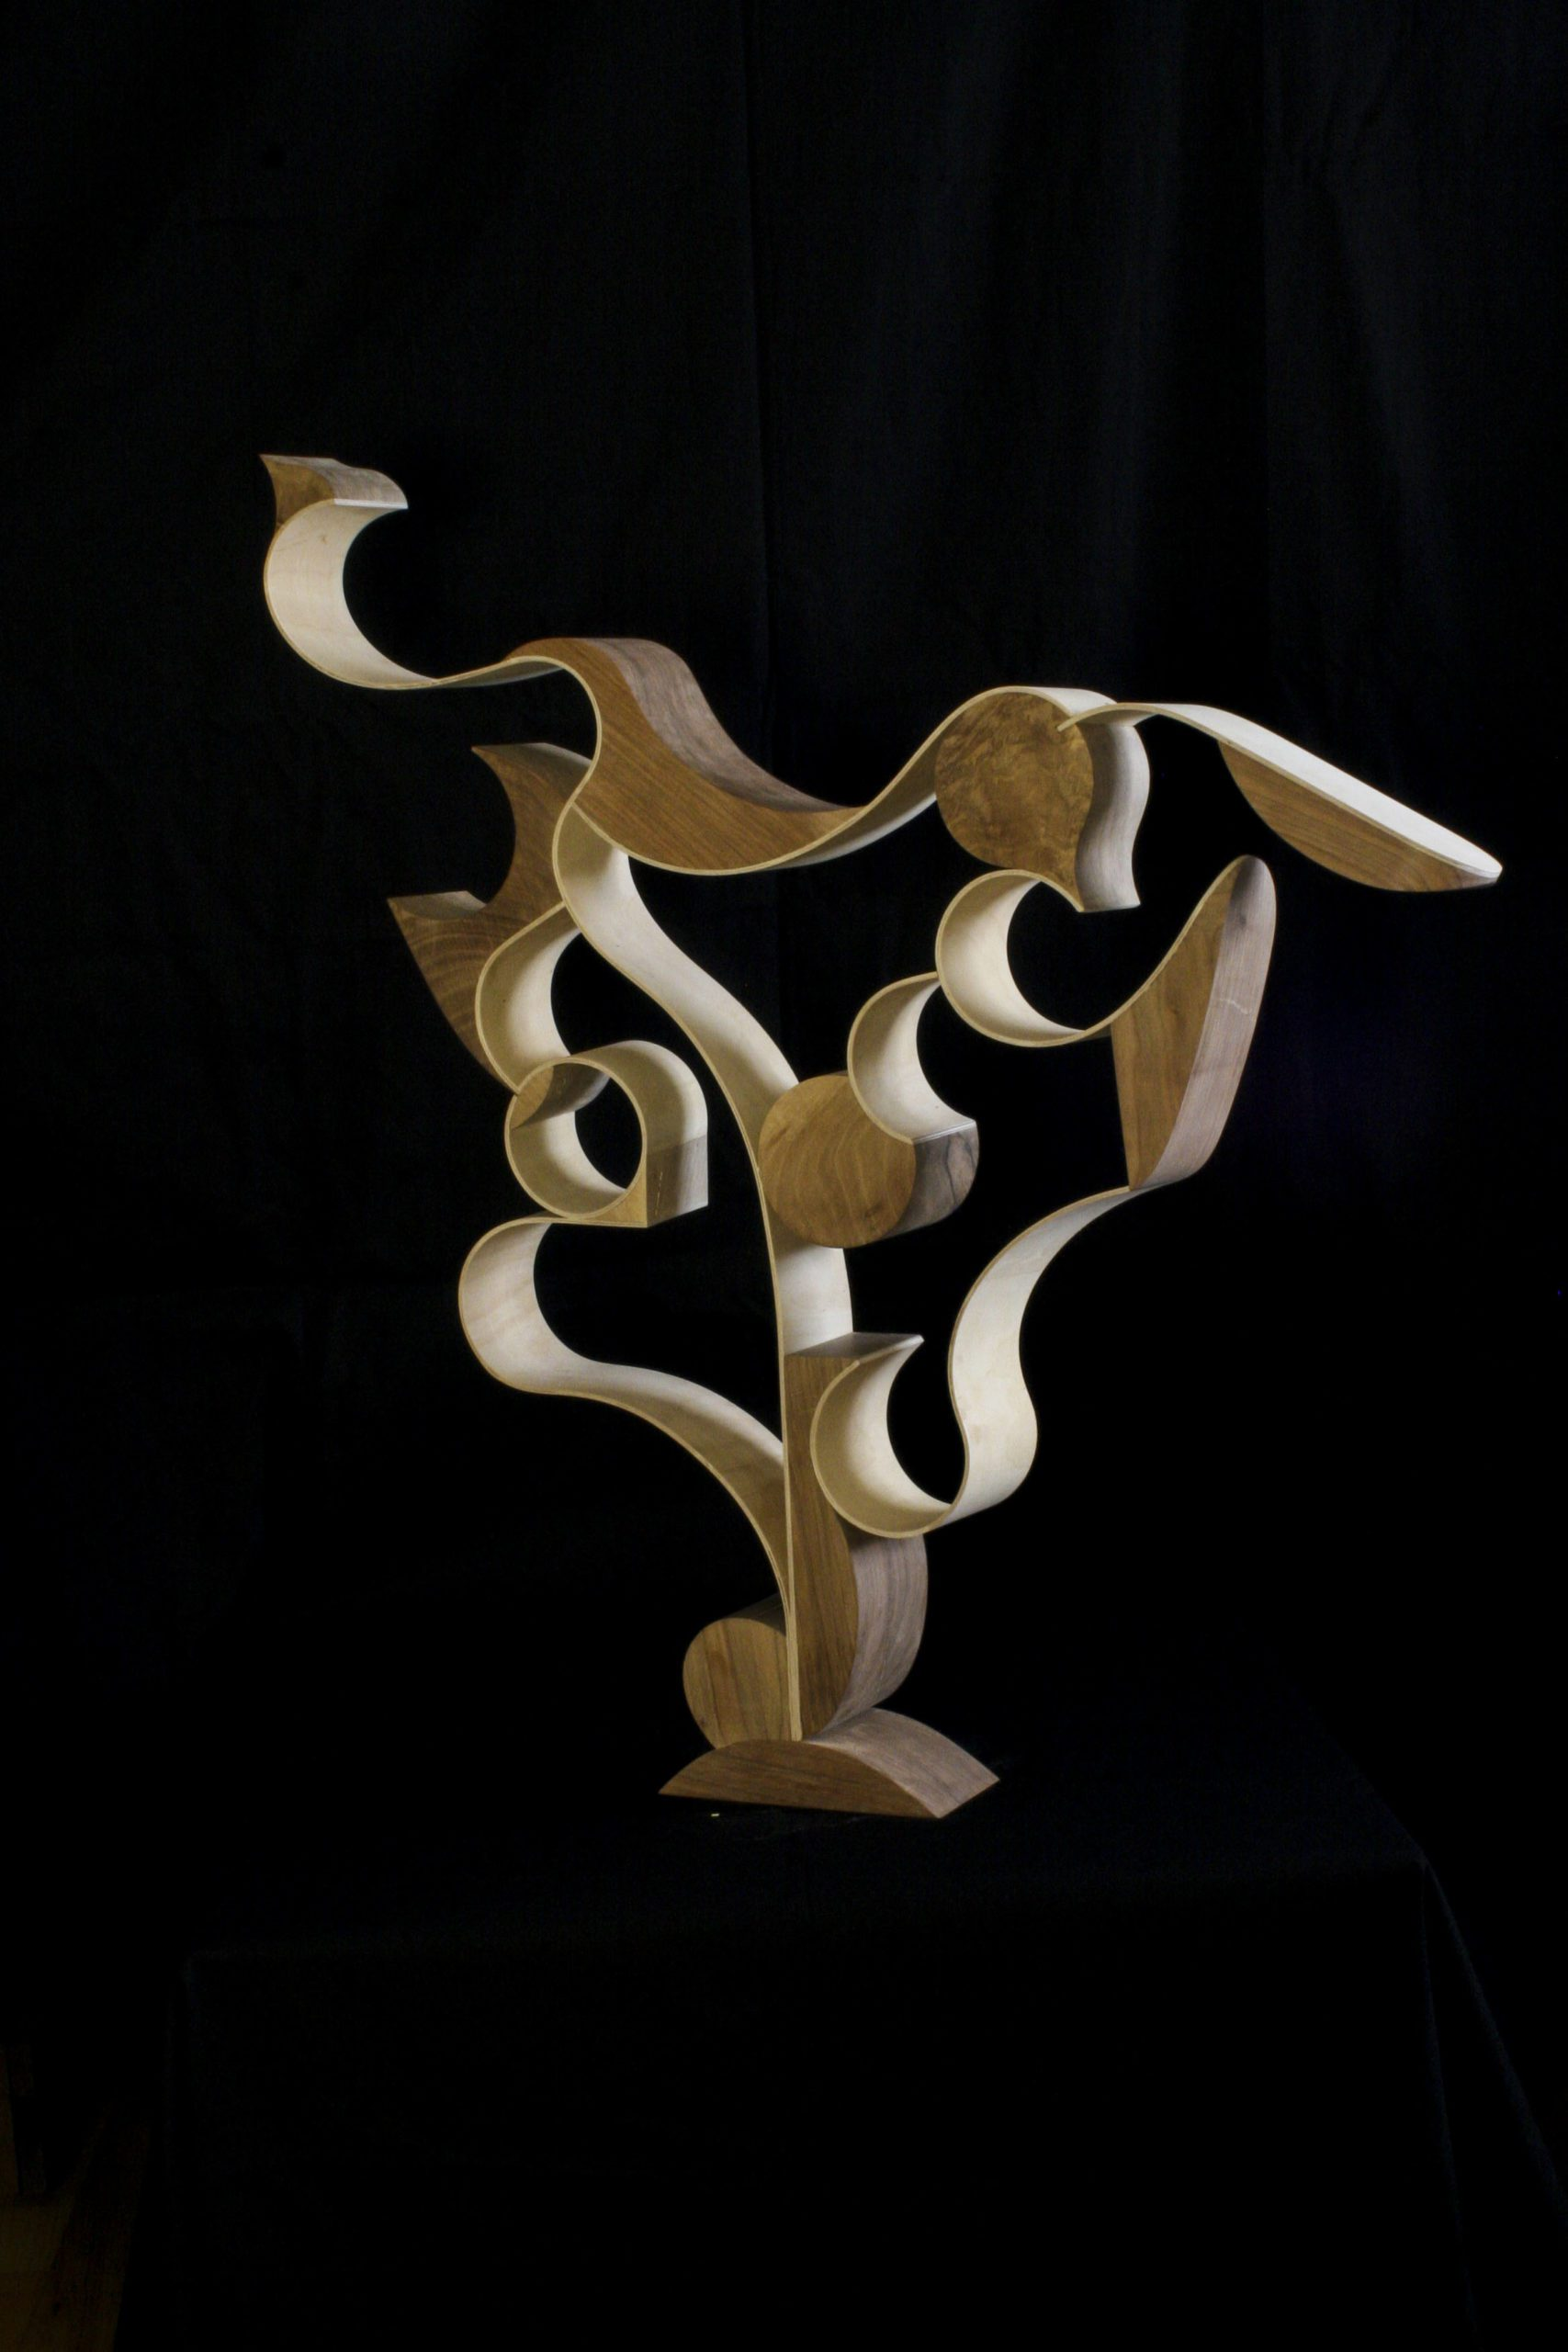 Sculpture 'Me' in wood and plywood